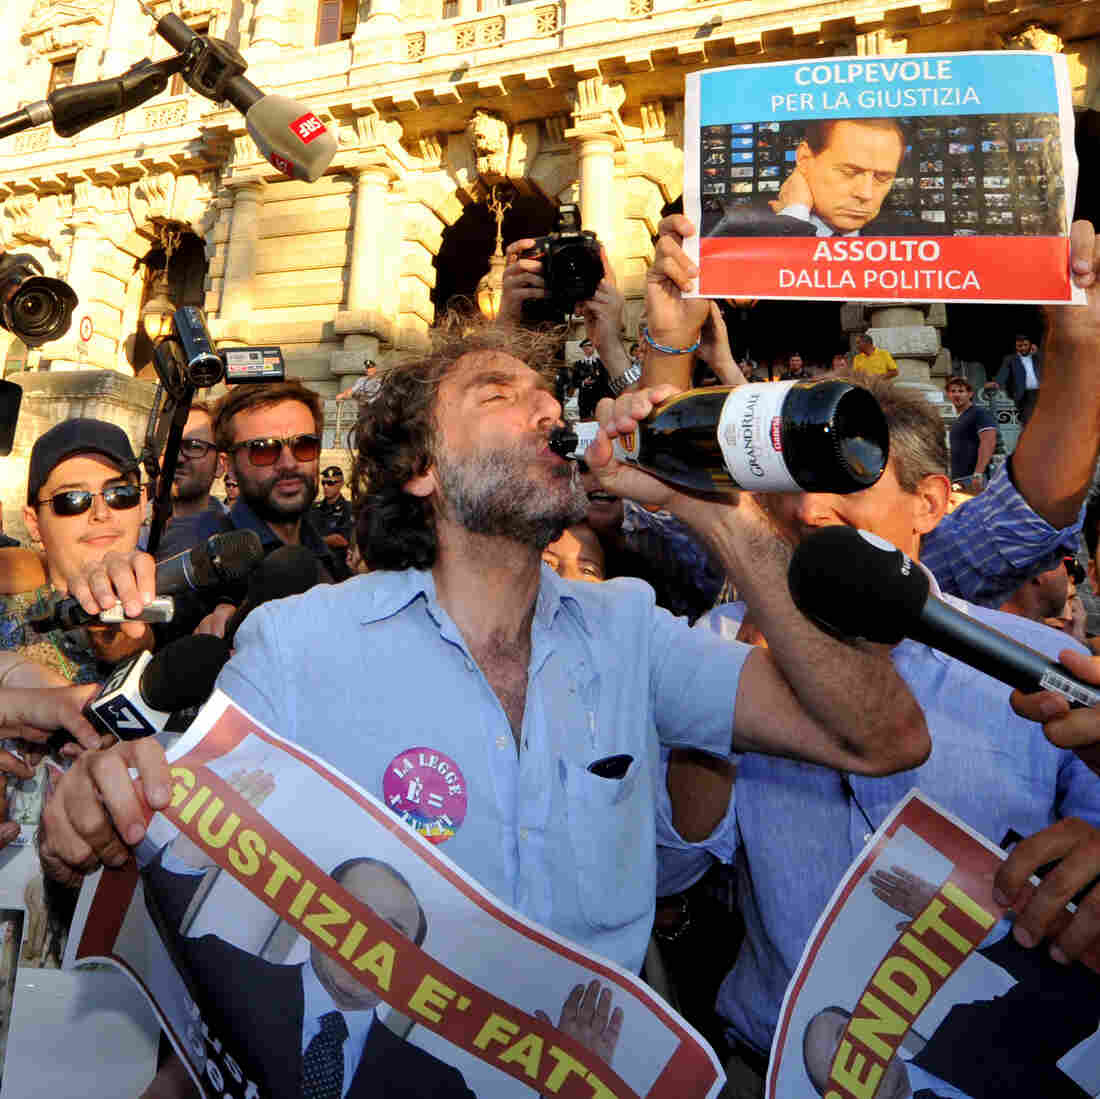 Celebrations in Rome after the Italian Supreme Court's sentencing of Italian politician Silvio Berlusconi on Thursday.